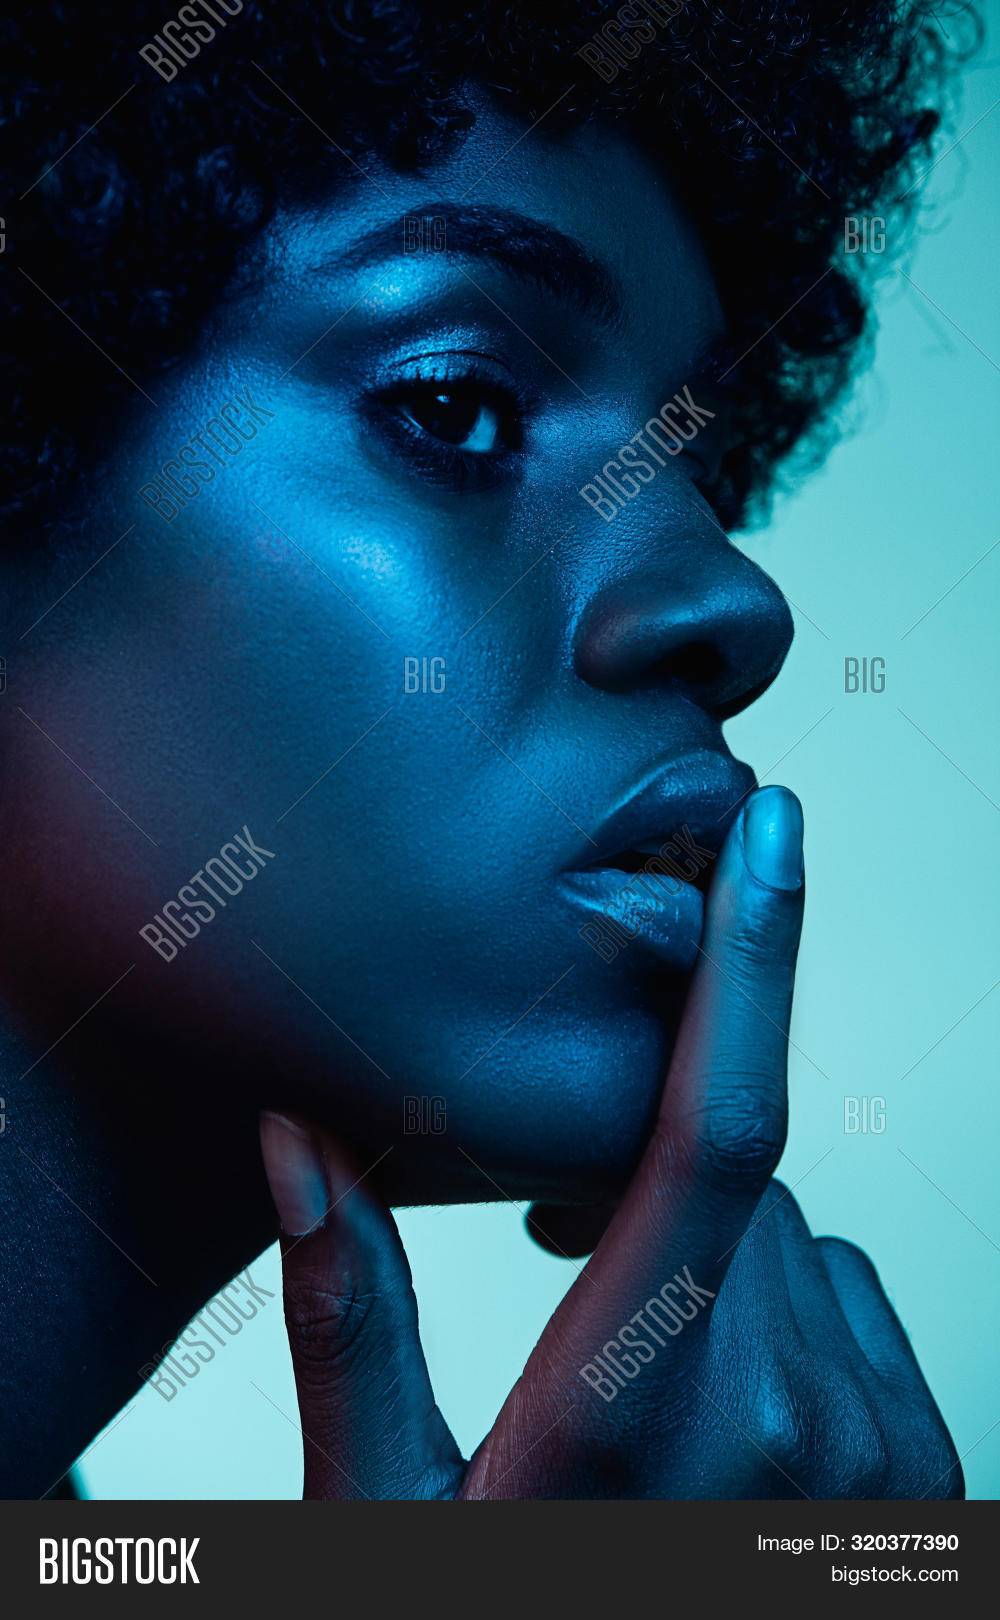 Marvelous Night. Portrait Of Female Fashion Model In Neon Light On Gradient Background. Beautiful Af